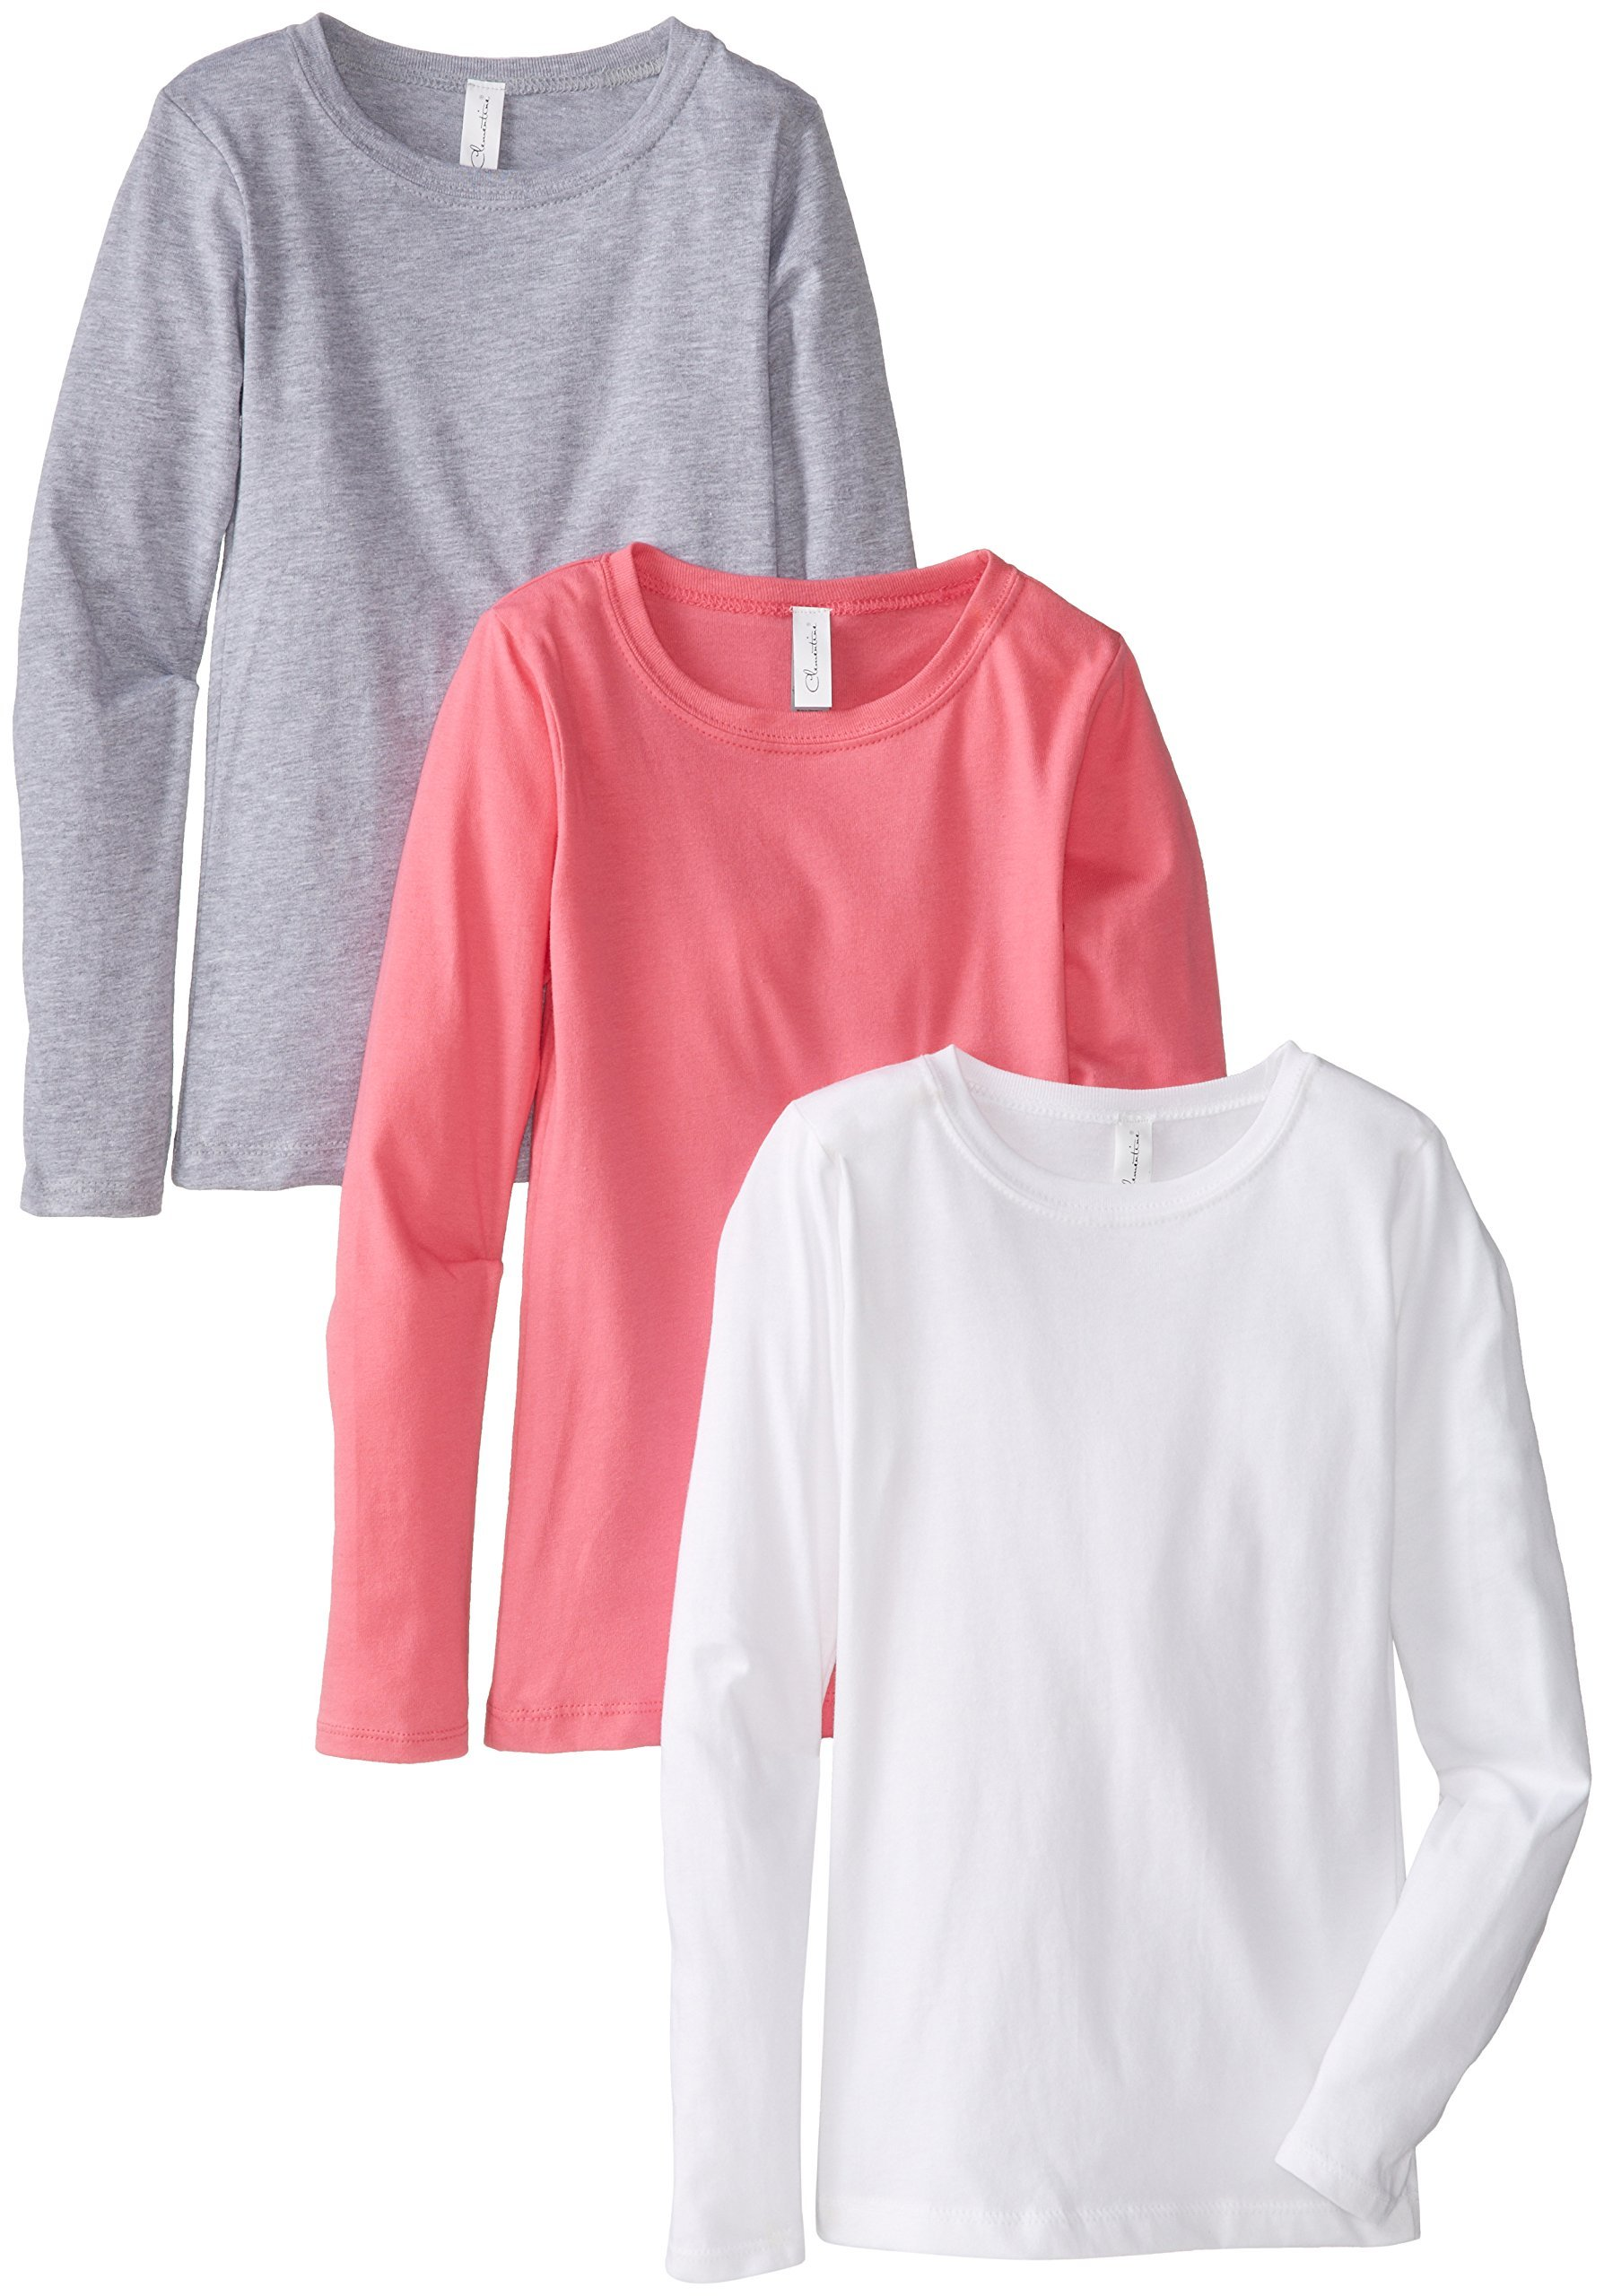 Clementine Big Girls' Everyday Long Sleeve Tee 3 Pack, White/Grey/Hot Pink,Large (10-12)